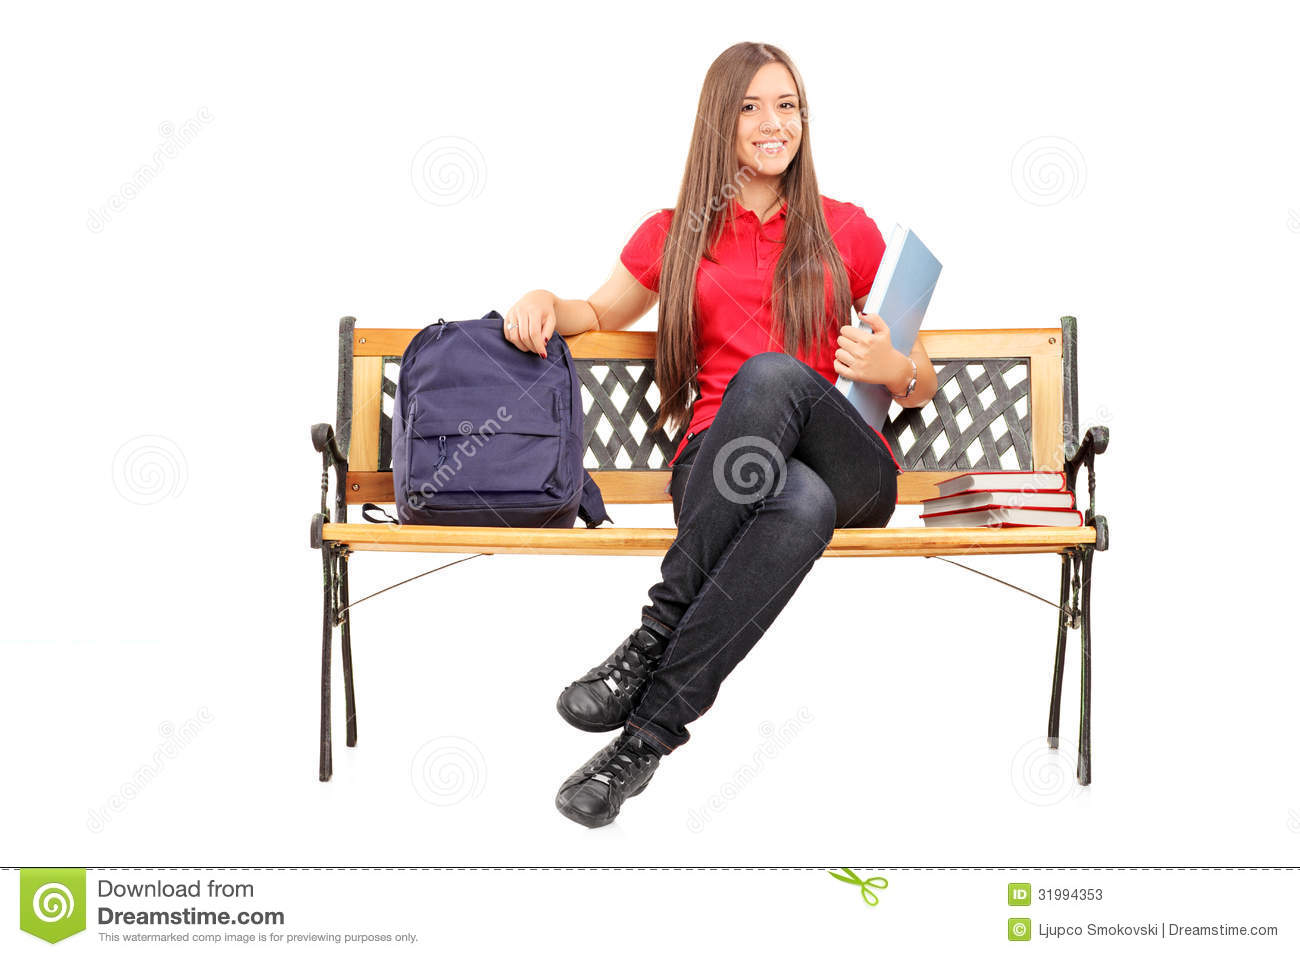 ... Photos: Smiling female student sitting on bench and holding a notebook